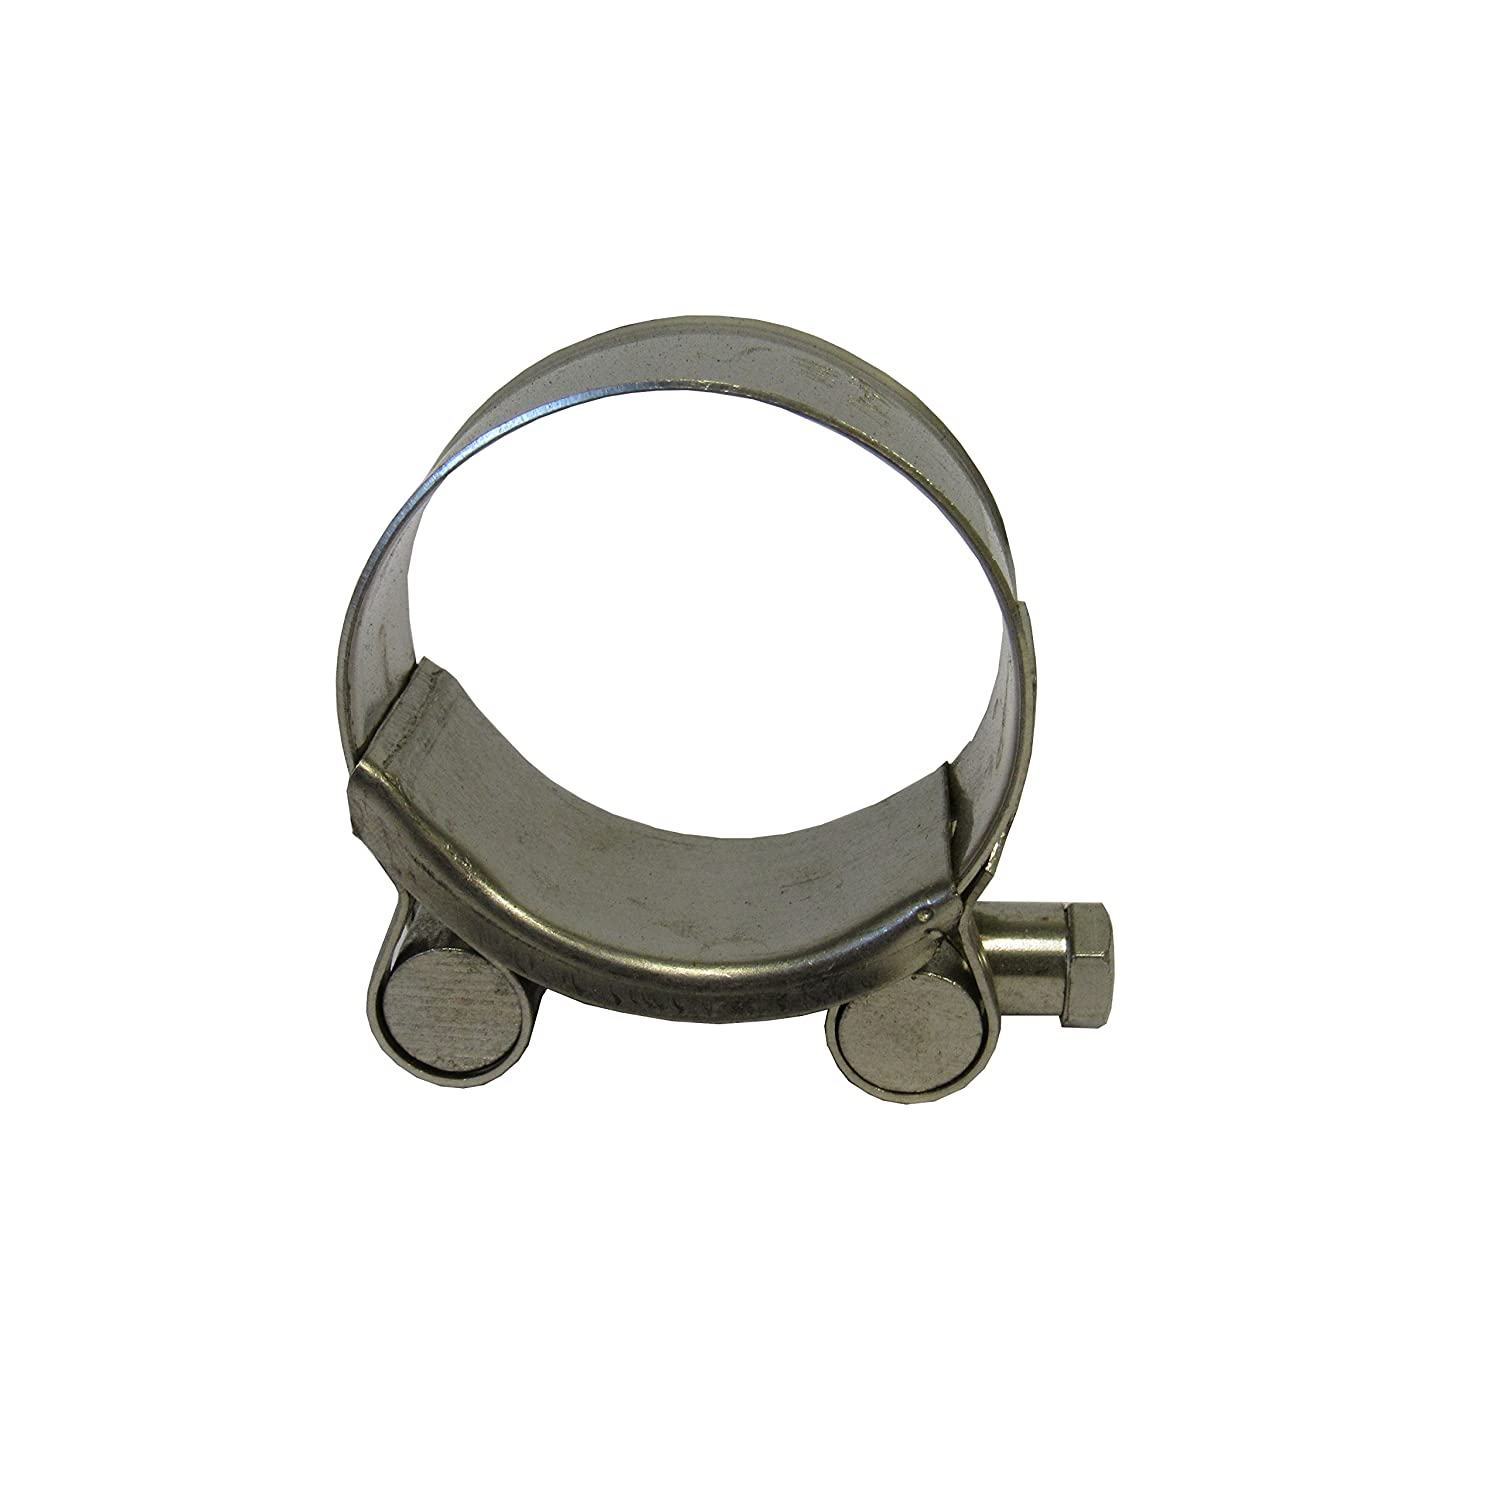 221003 T-Bolt Clamp for use with 1.50 or 1.75 Inside Diameter Hose Coupling Part Number